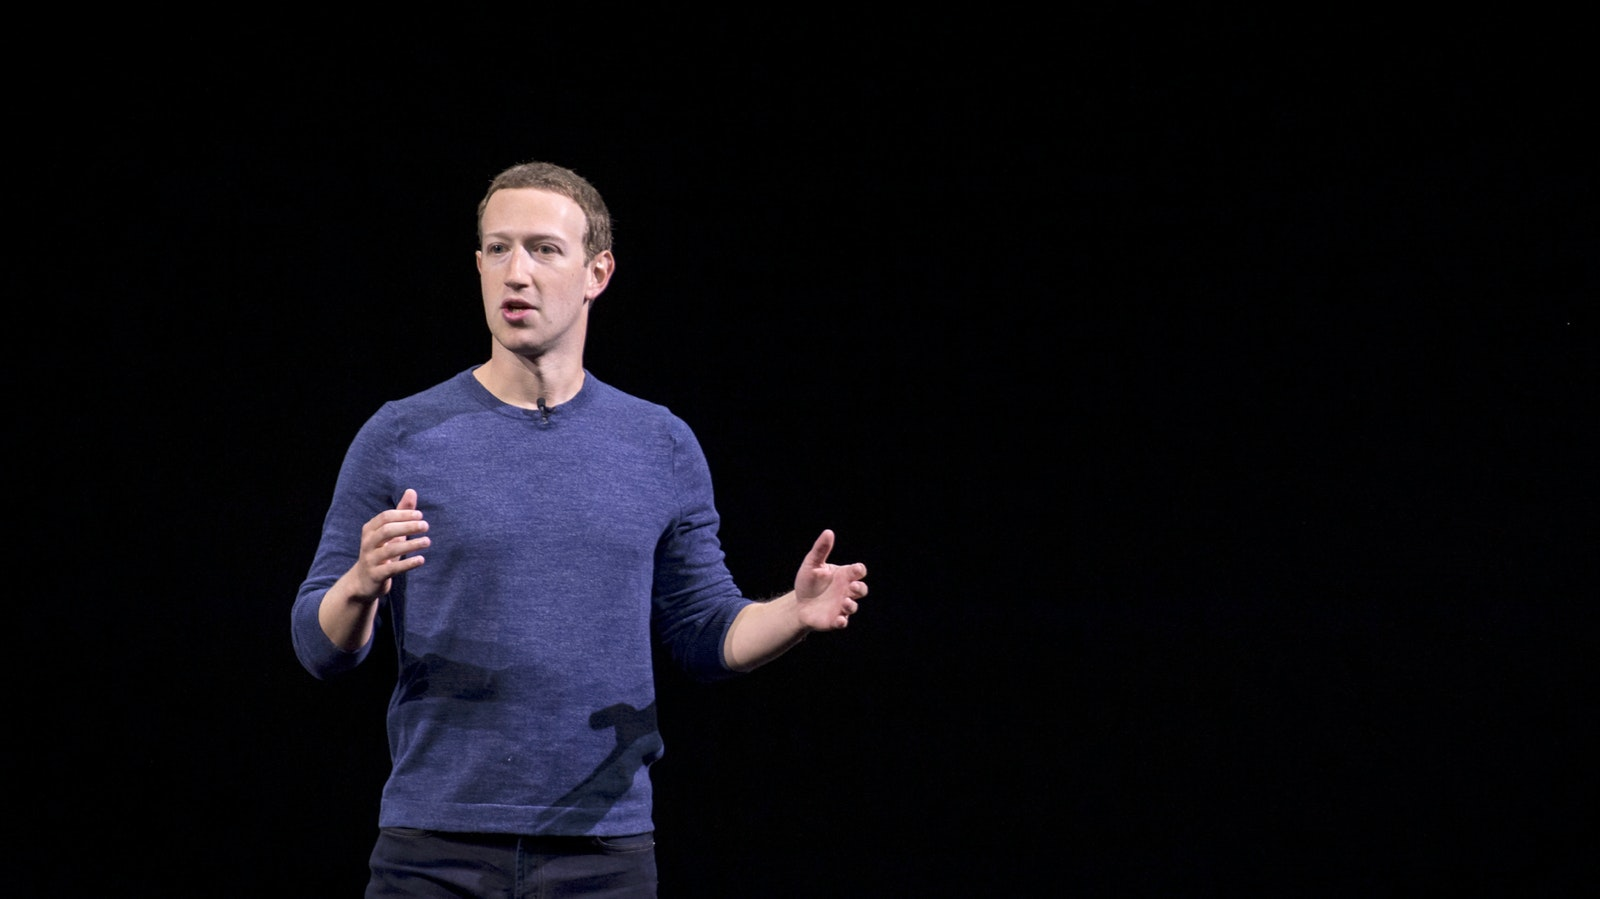 Facebook CEO Mark Zuckerberg at a company event in September. Photo by Bloomberg